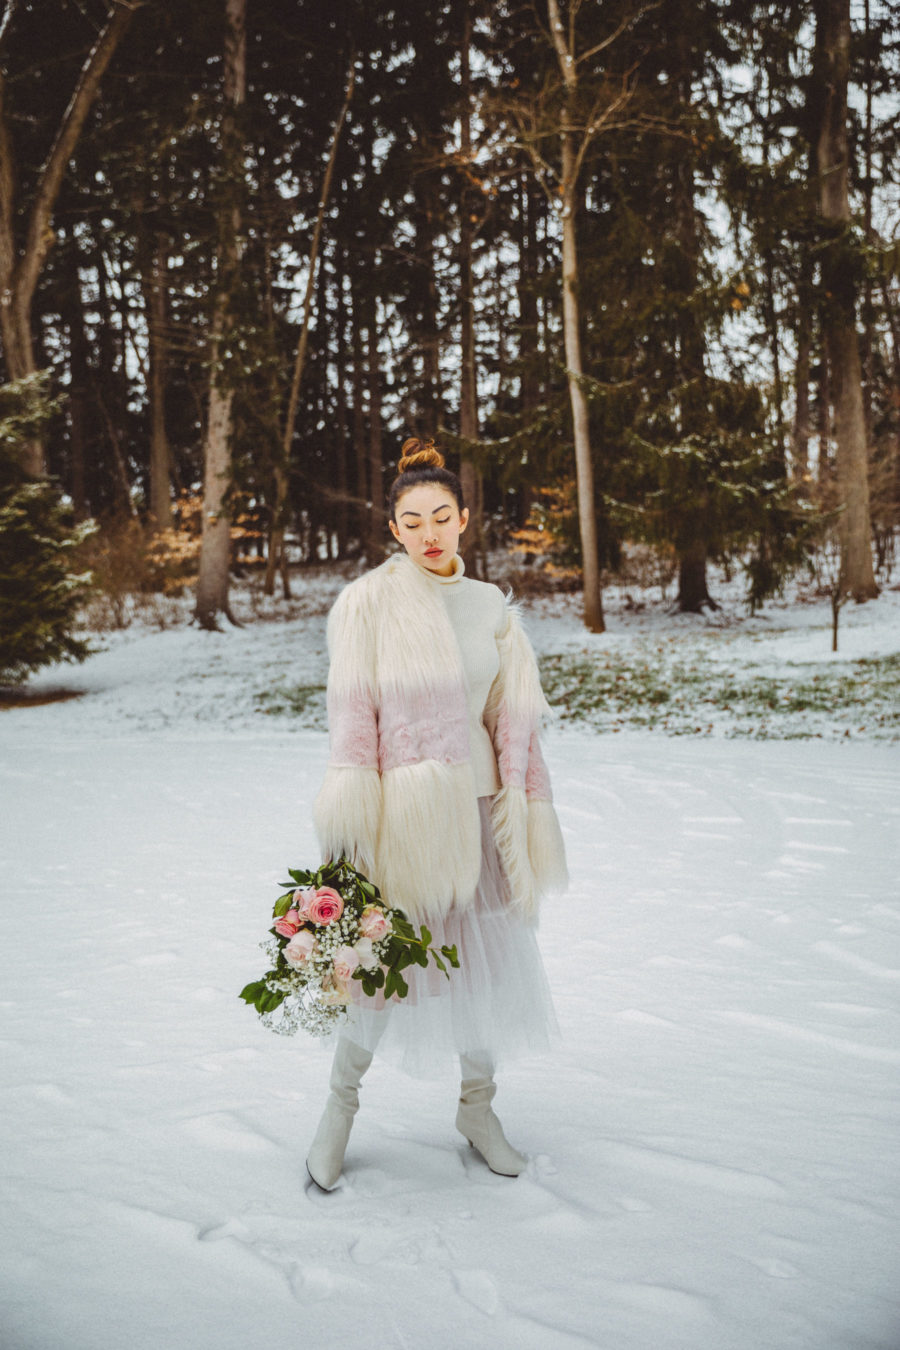 Dressy Winter Outfits - White and Pink Fur Coat with Tulle Skirt and White Sweater // Notjessfashion.com // elegant winter outfit, dressy outfits for the snow, snow outfit, tulle midi skirt, white boots, winter white outfit, asian blogger, new york fashion blogger, winter fashion editorial